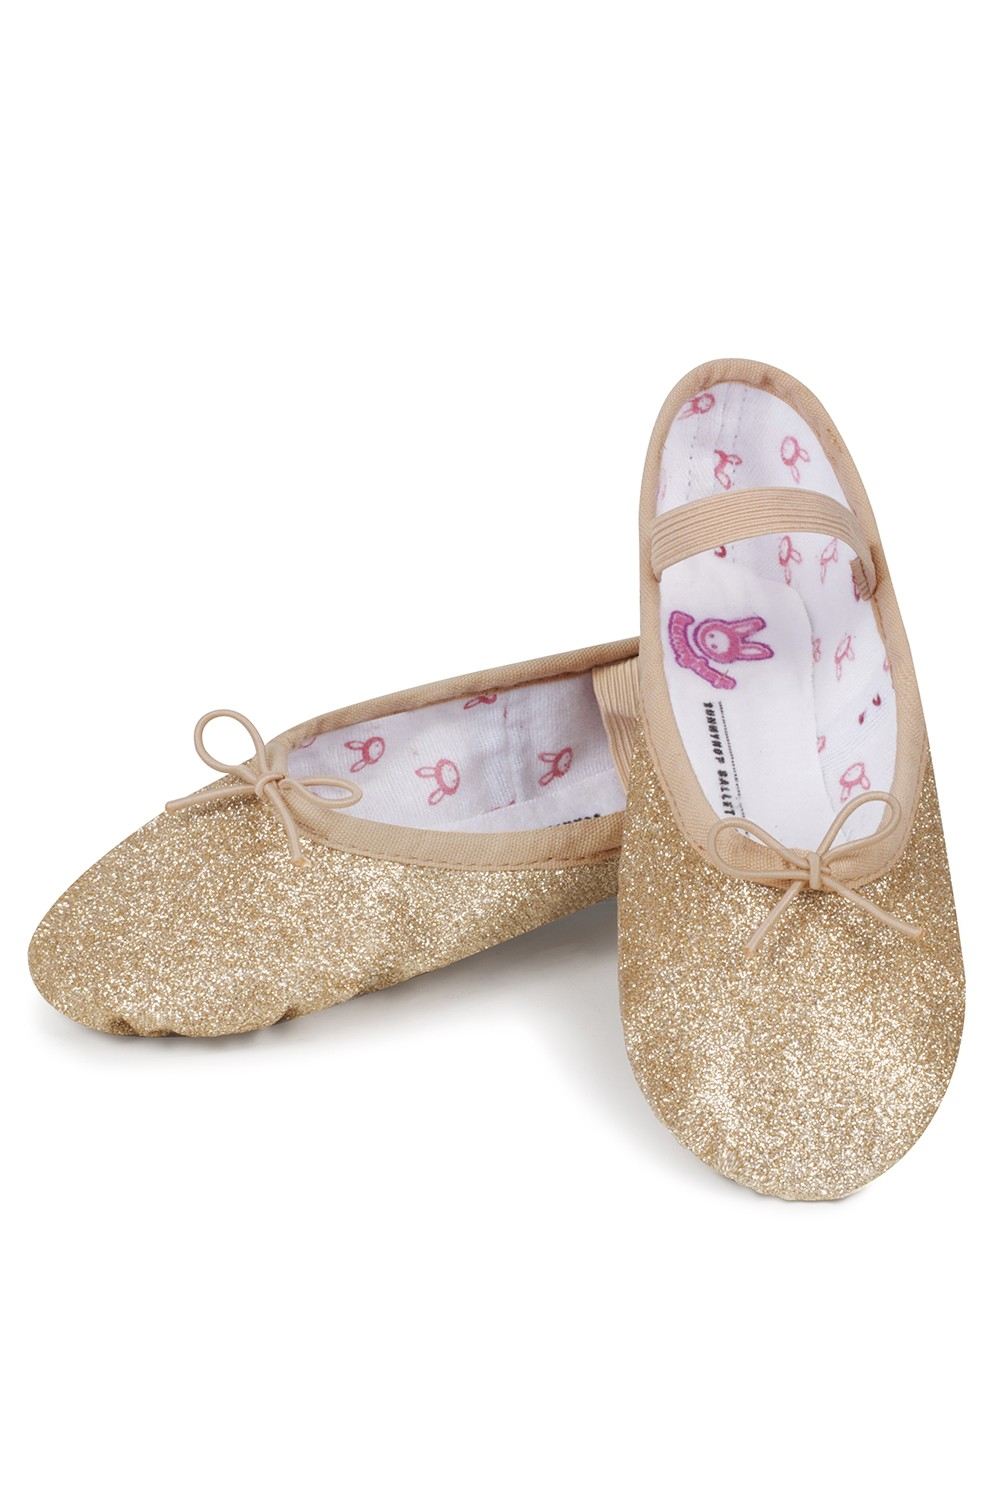 Glitterdust - Girls Girl's Ballet Shoes